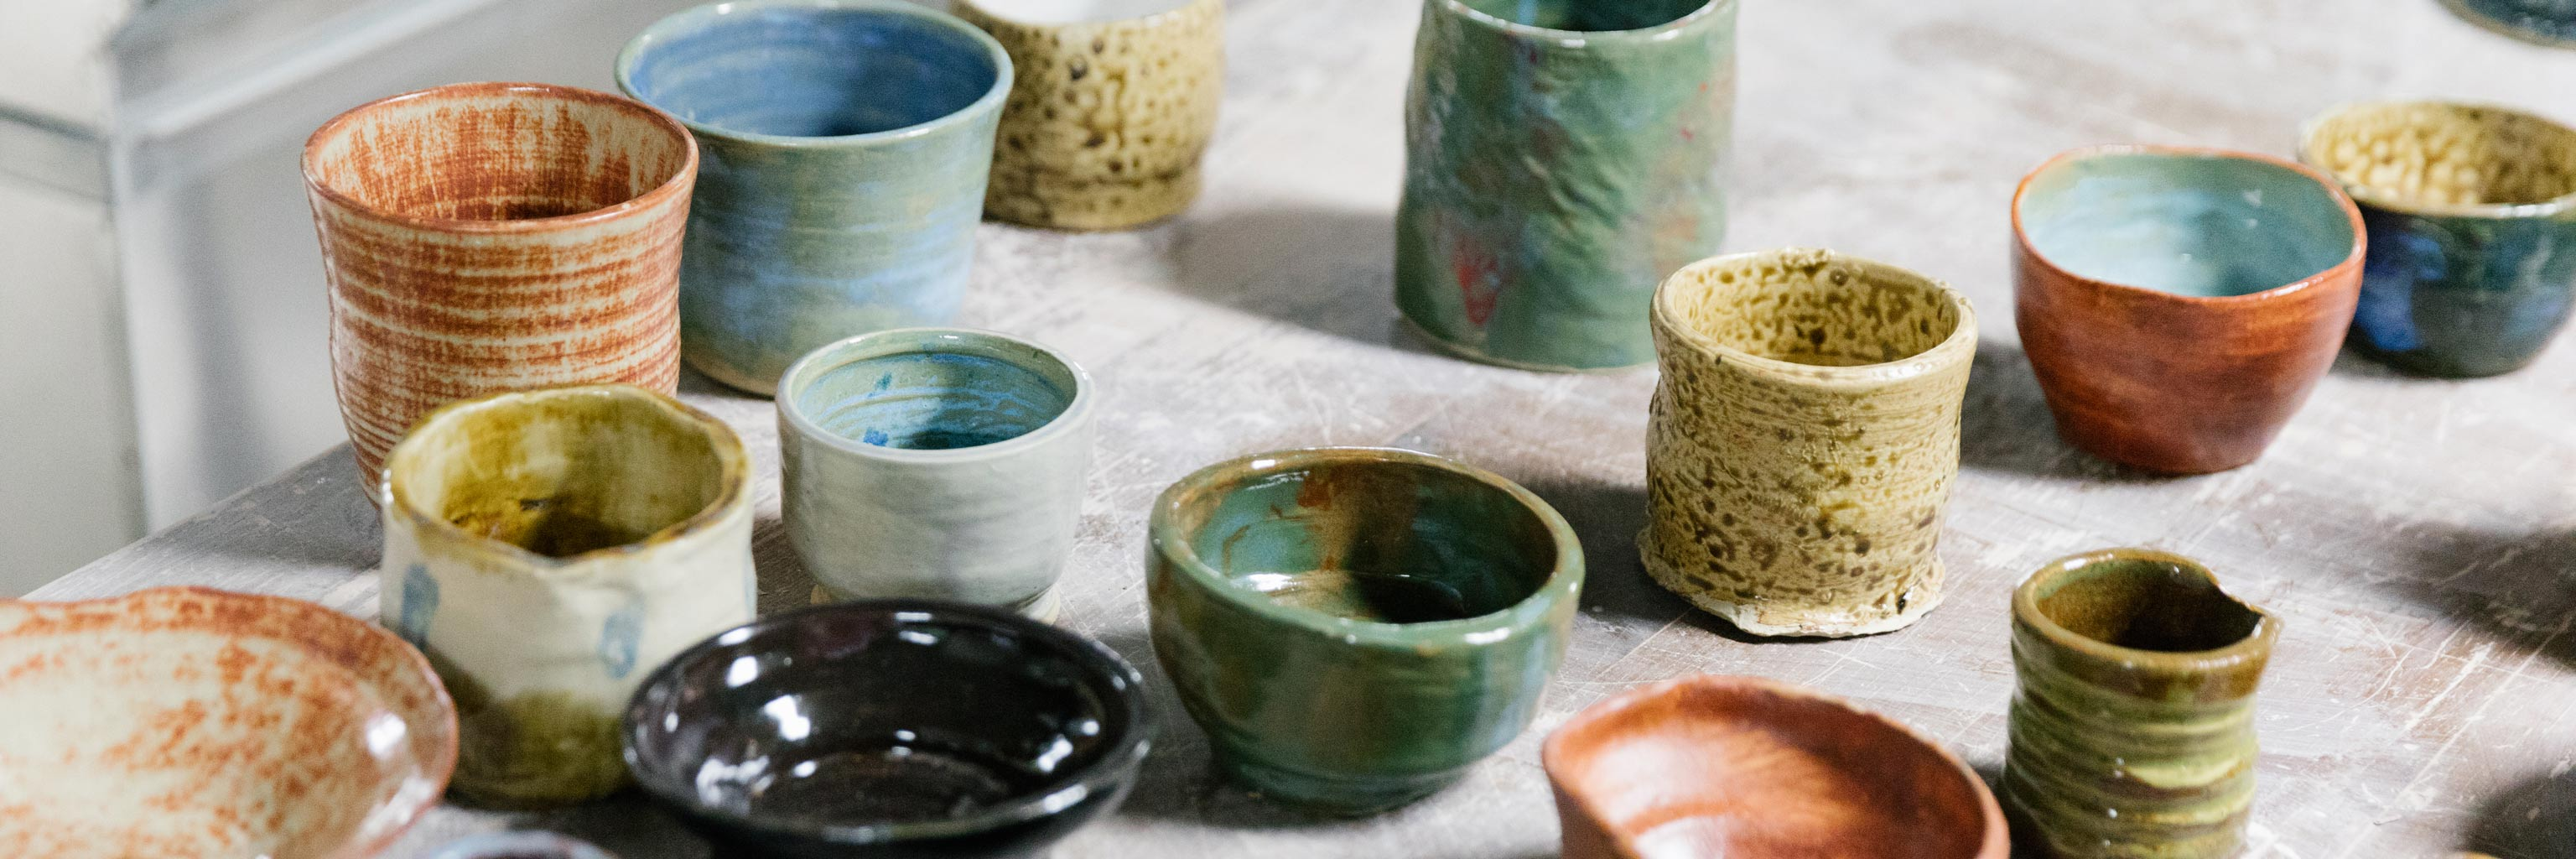 An assortment of glazed pottery